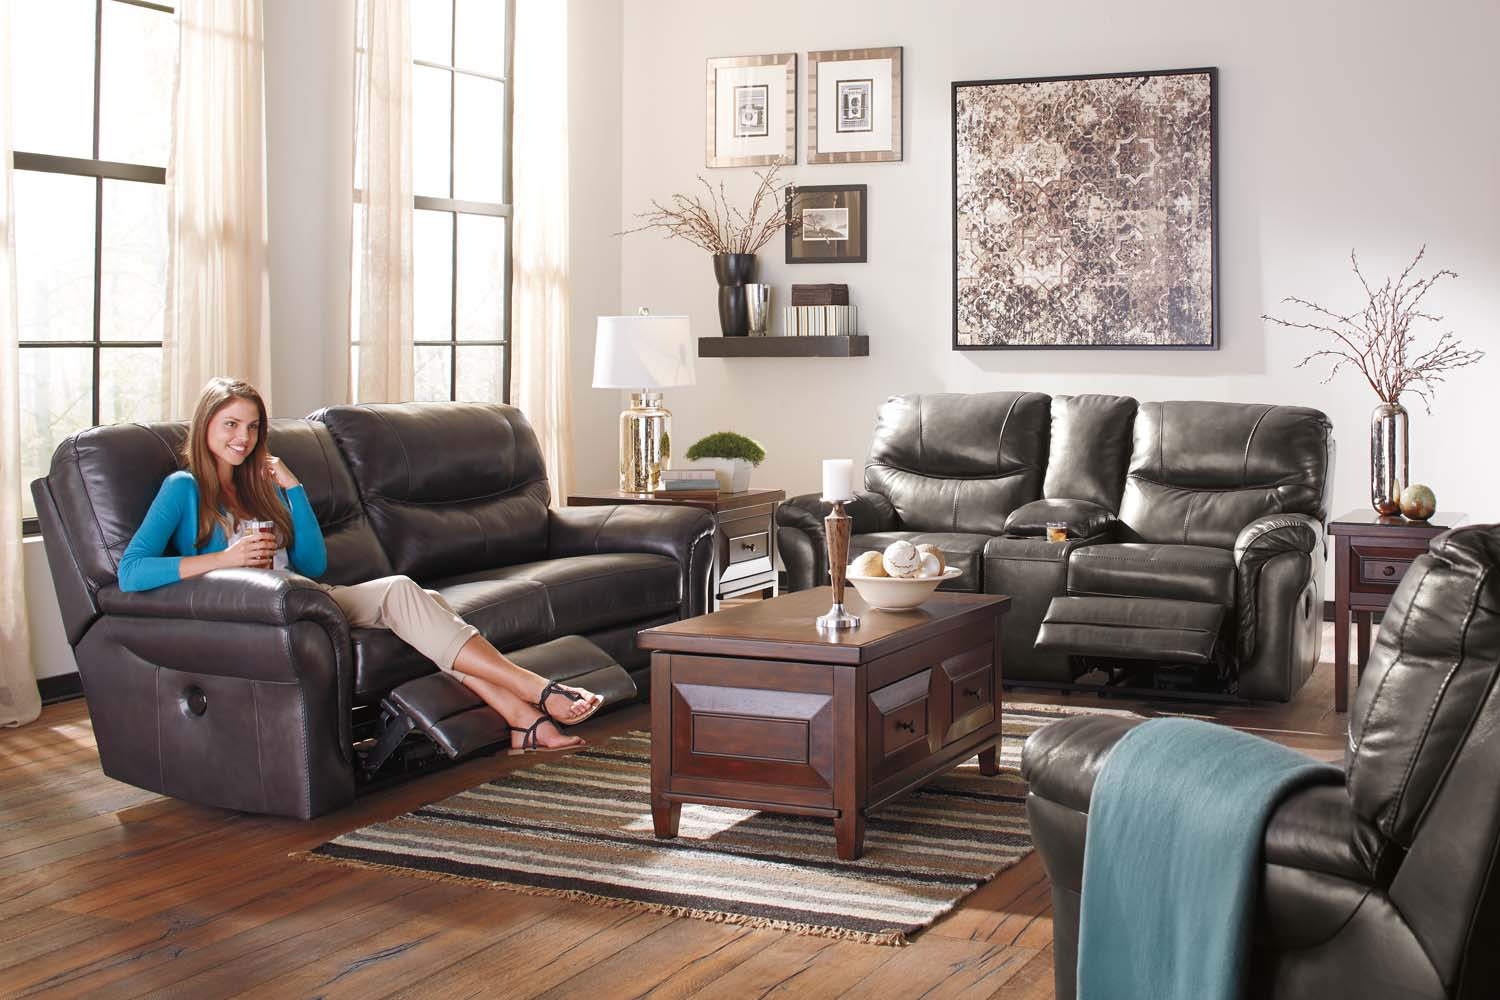 100 Ashley Furniture Outlet In Houston Tx Ashley Slidell Reclining Sofa And Love Dream